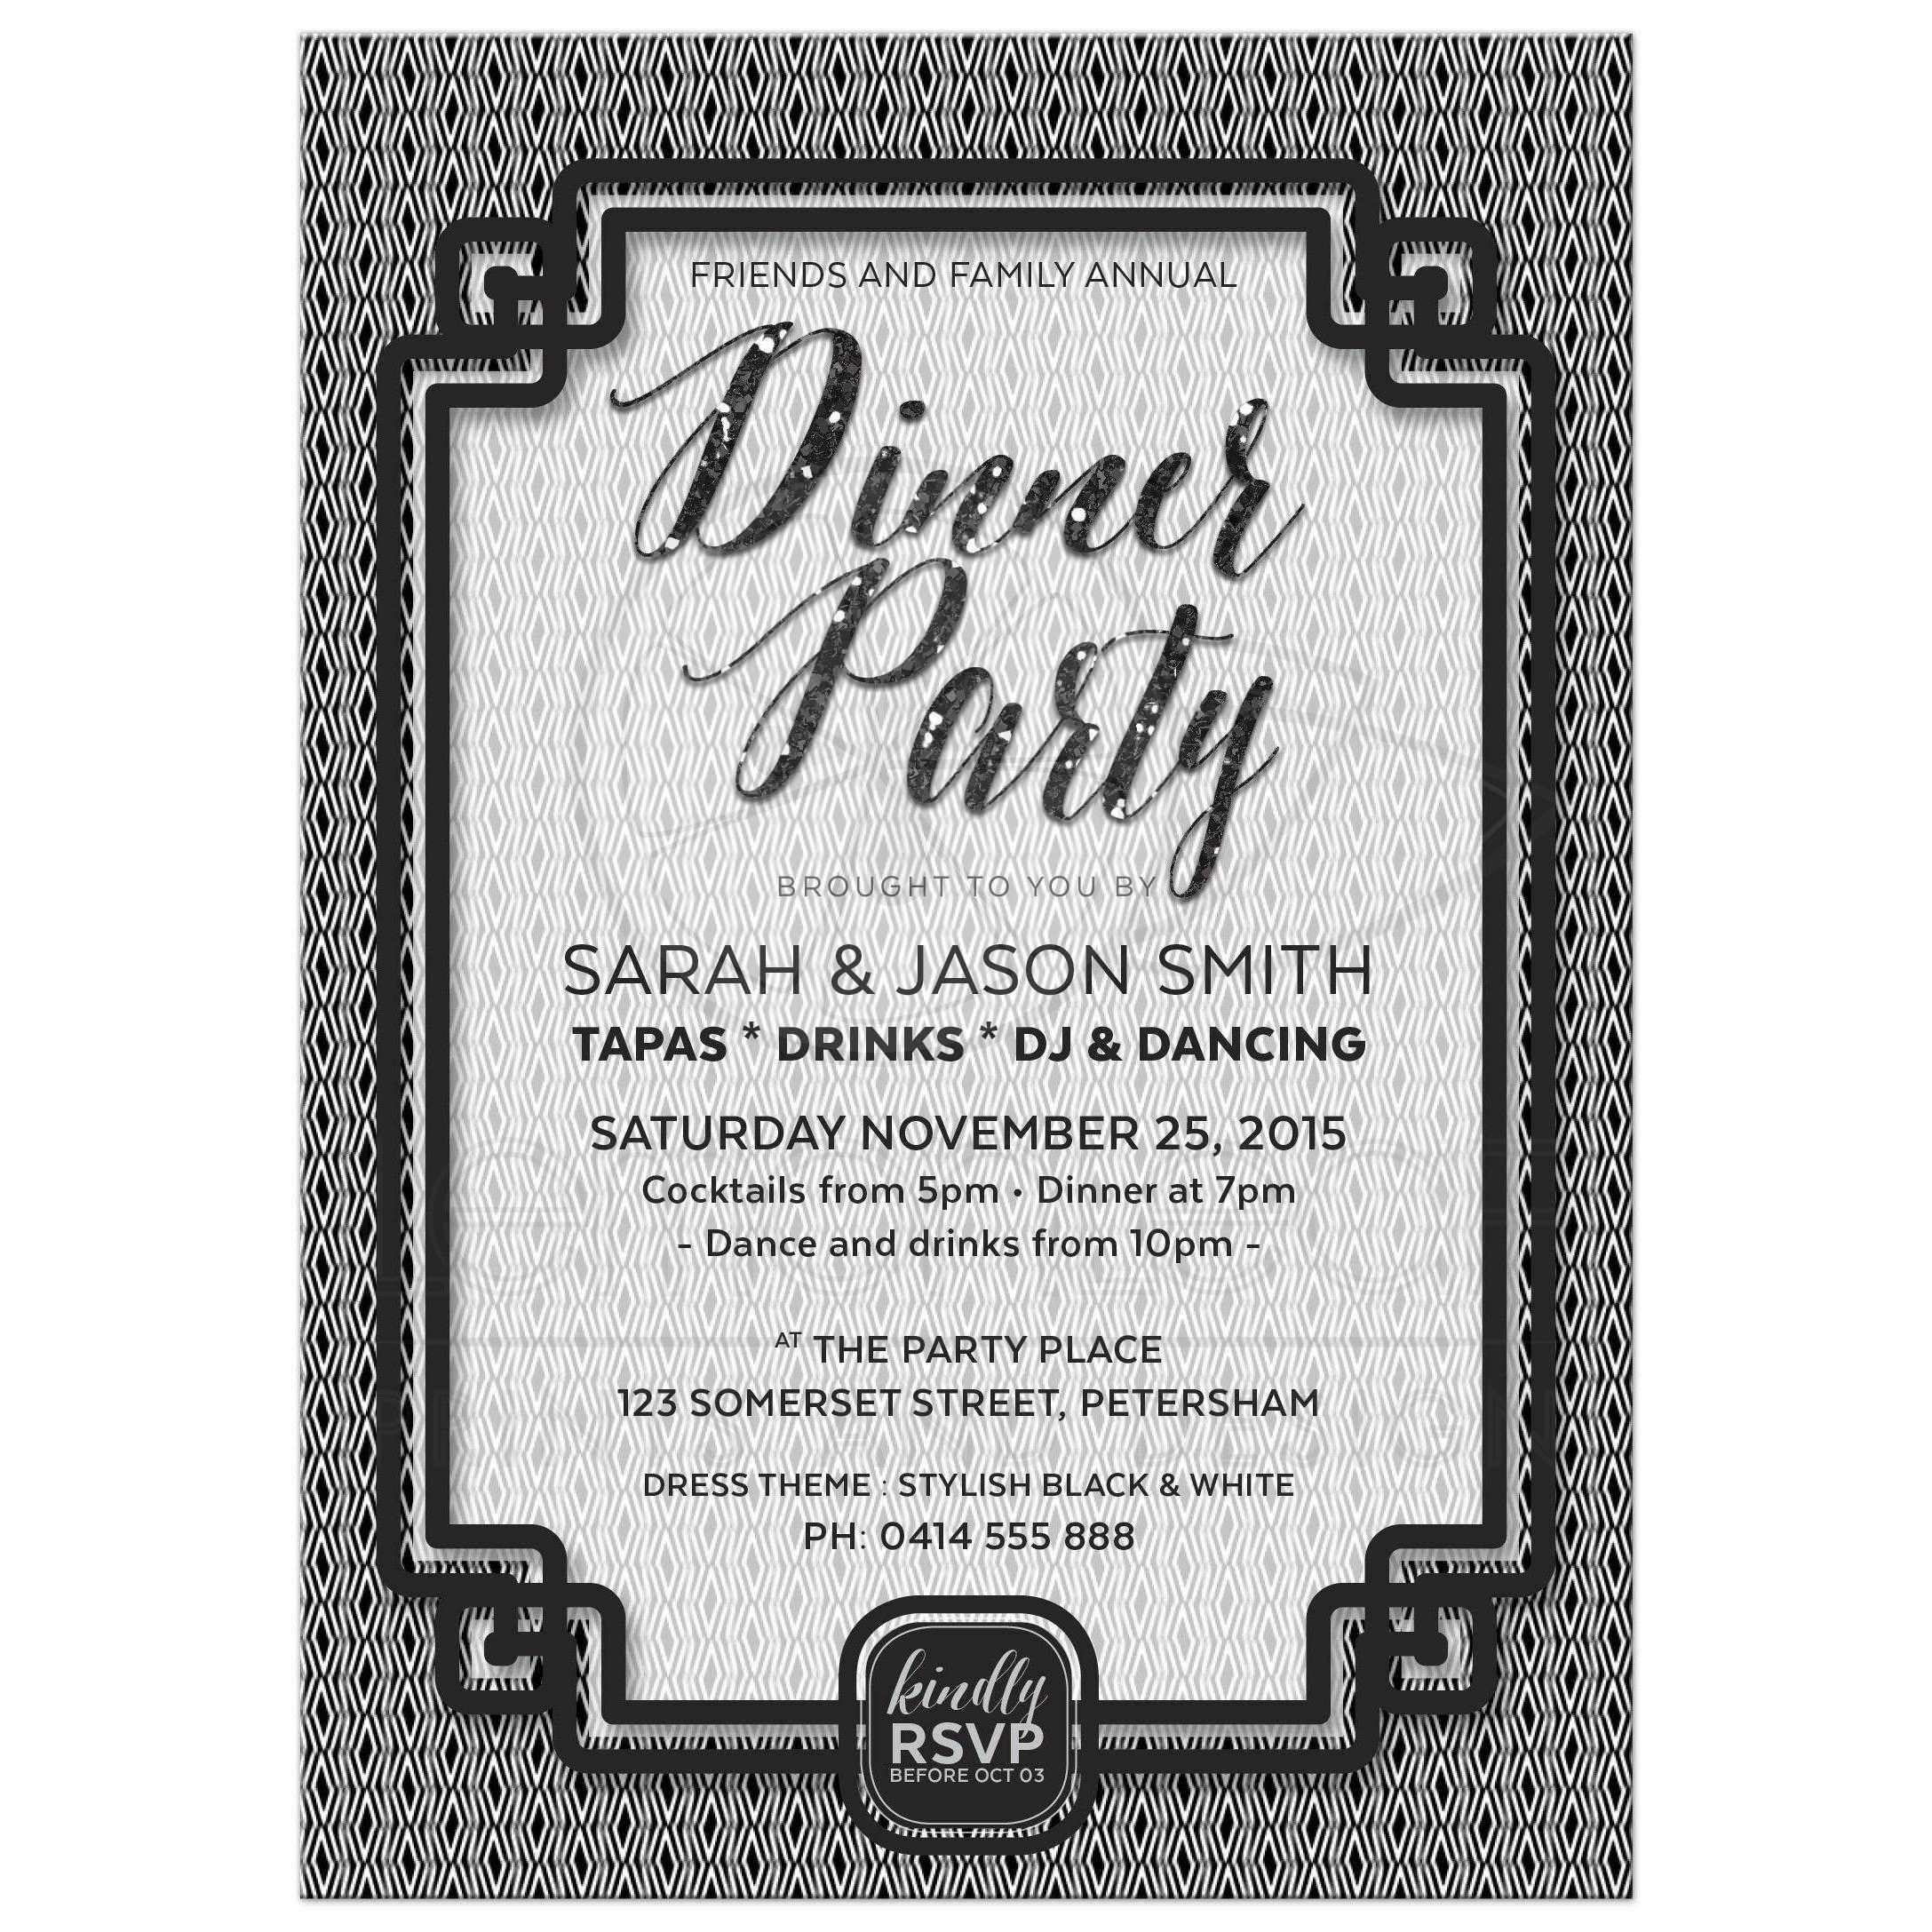 Black and White Dinner Party Invitation | Simply Stylish 01